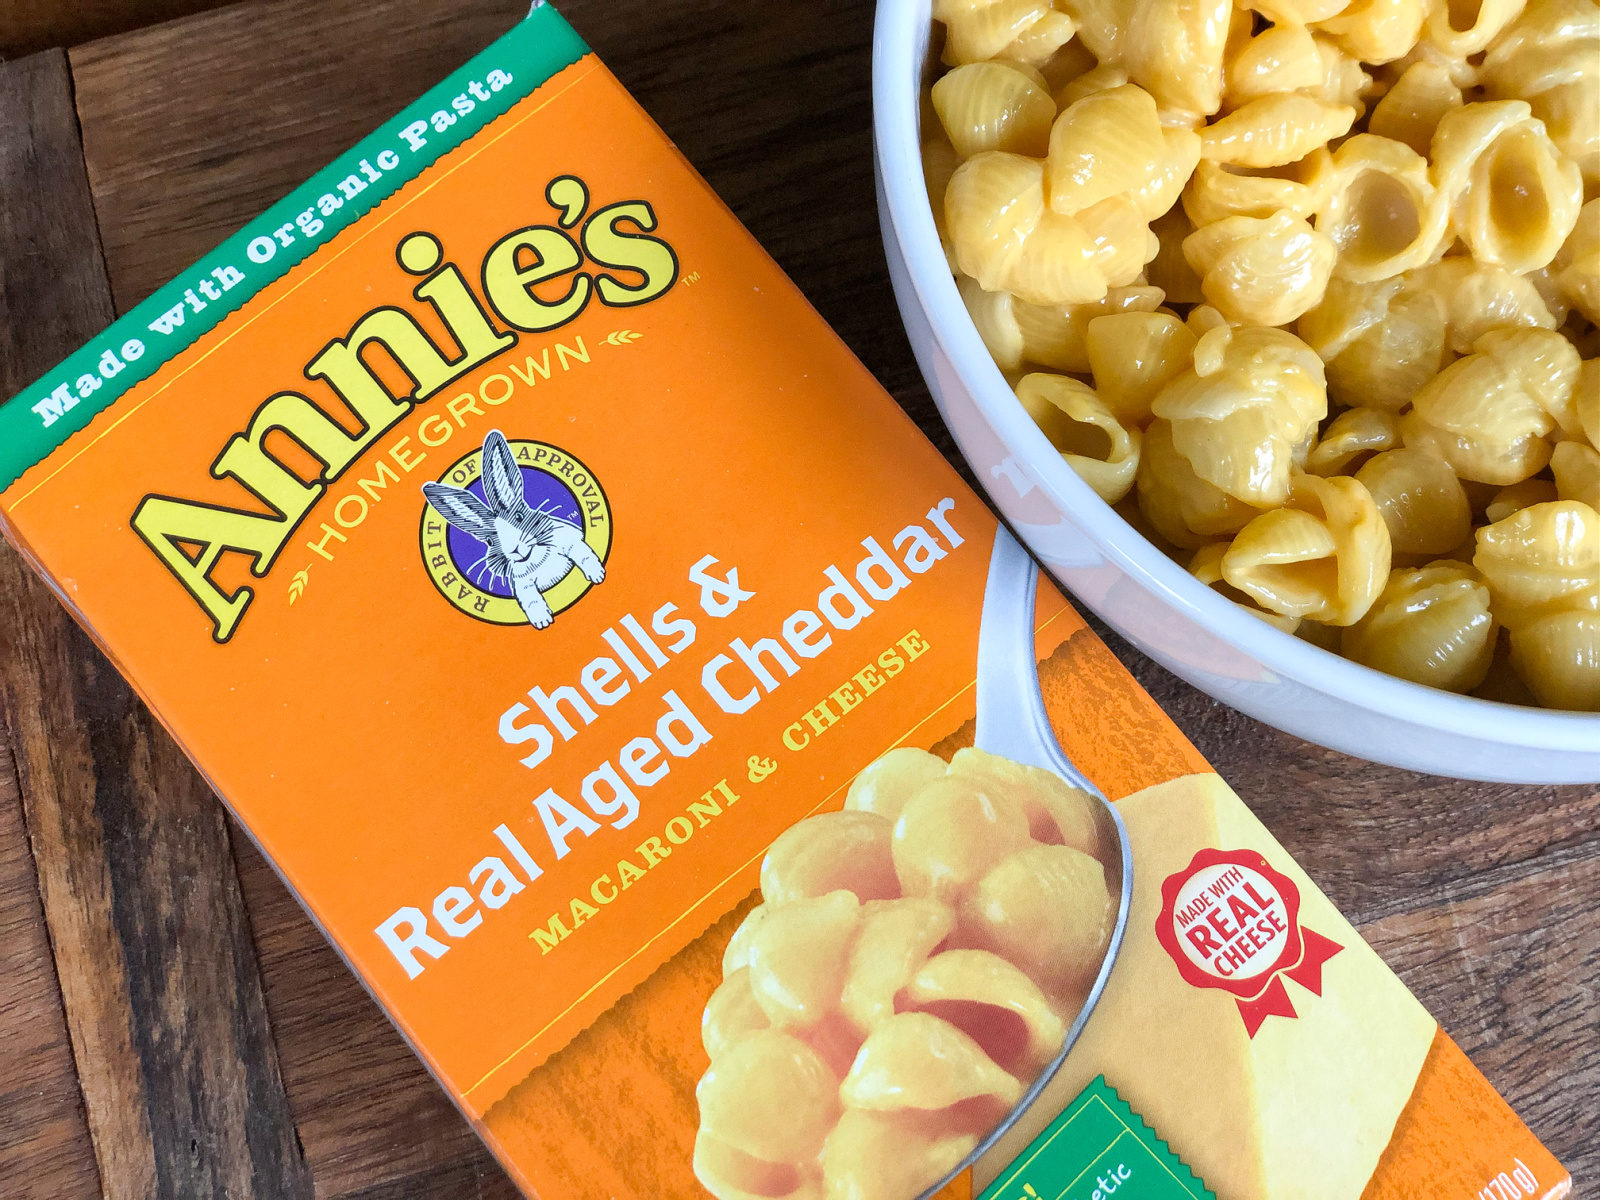 Annie's Homegrown Macaroni & Cheese Just 66¢ Per Box At Publix on I Heart Publix